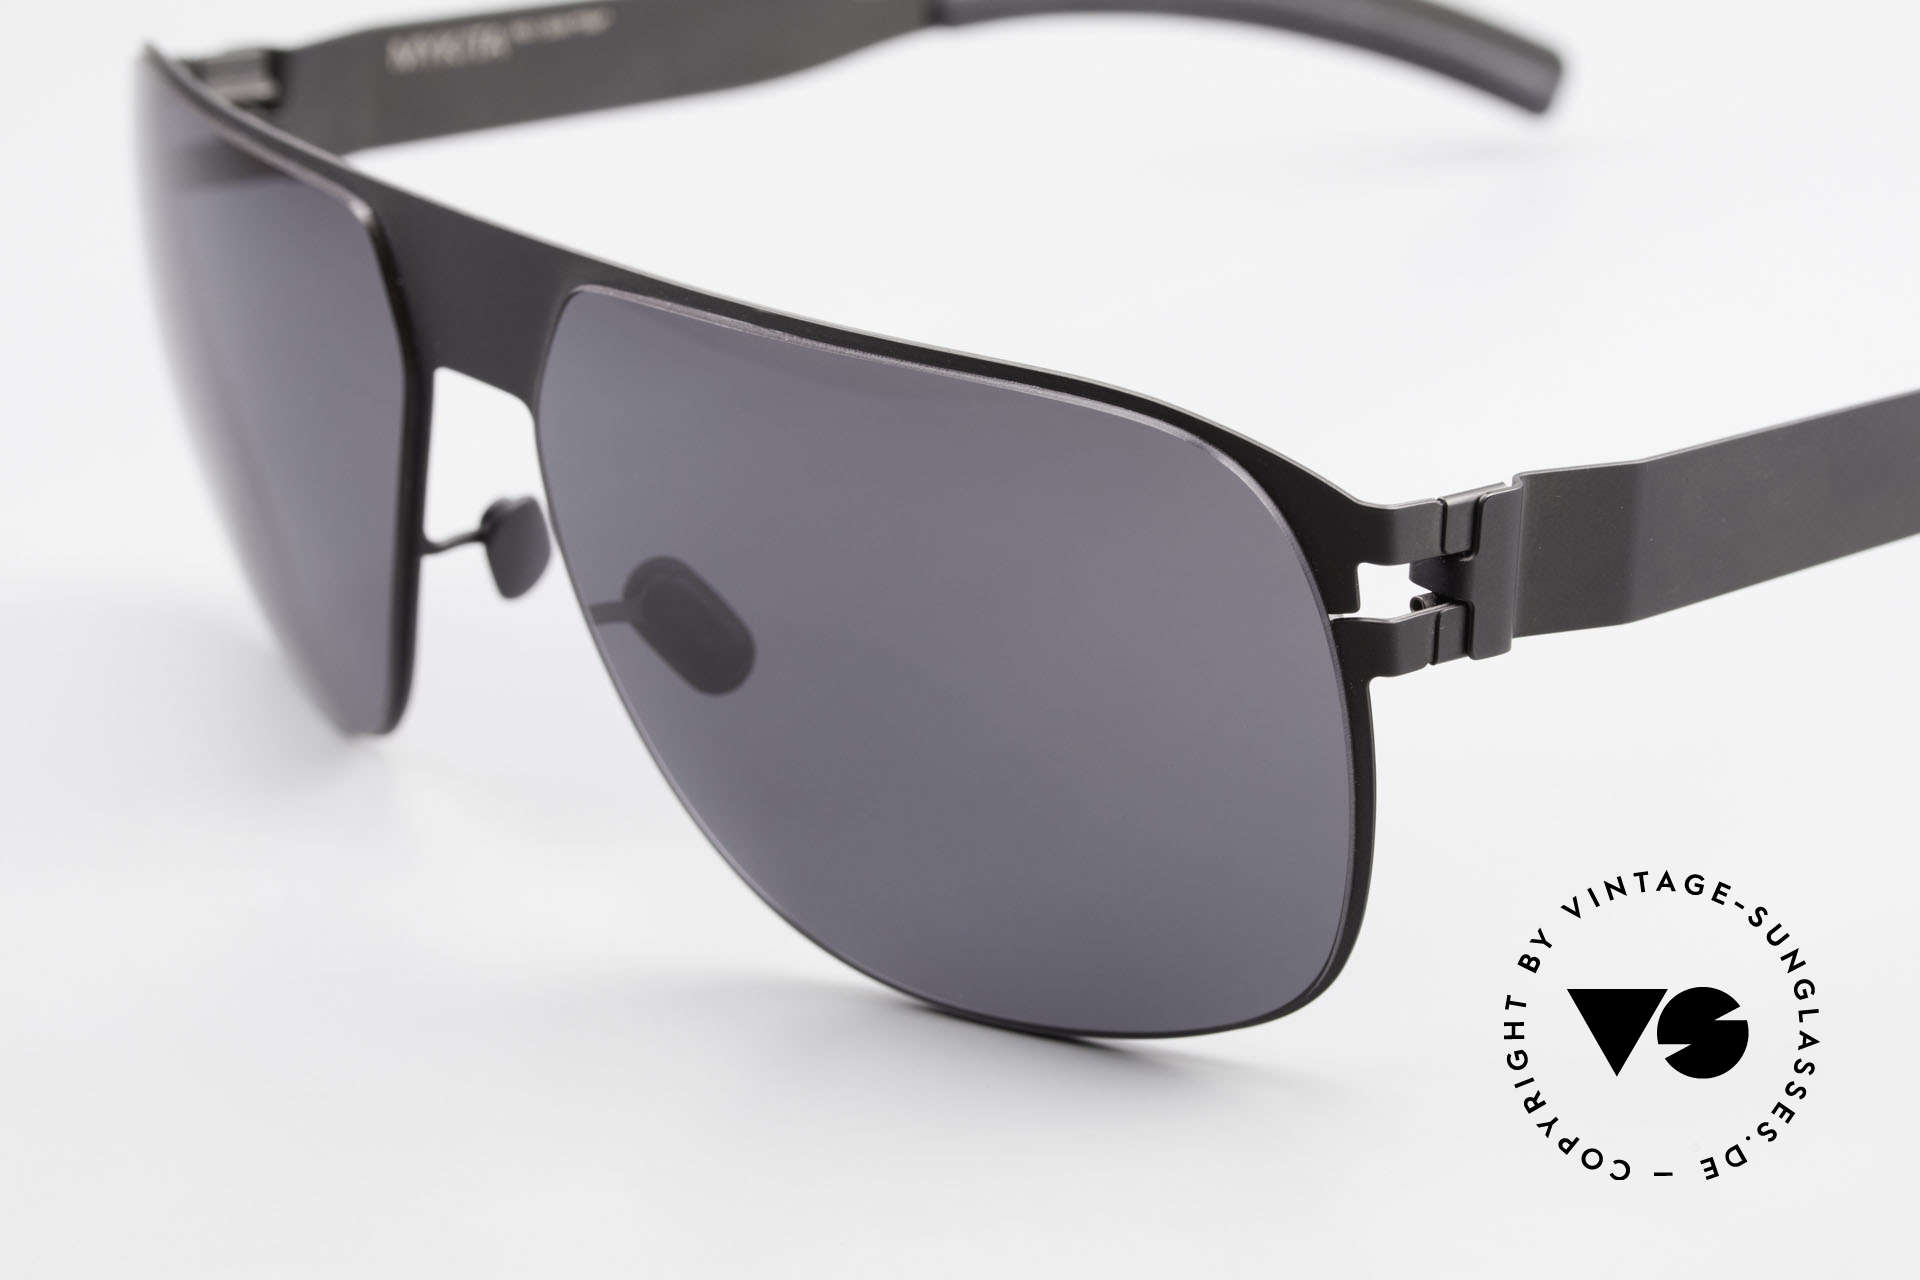 Mykita Tim No 1 Collection Shades 2011's, innovative and flexible metal frame = One size fits all!, Made for Men